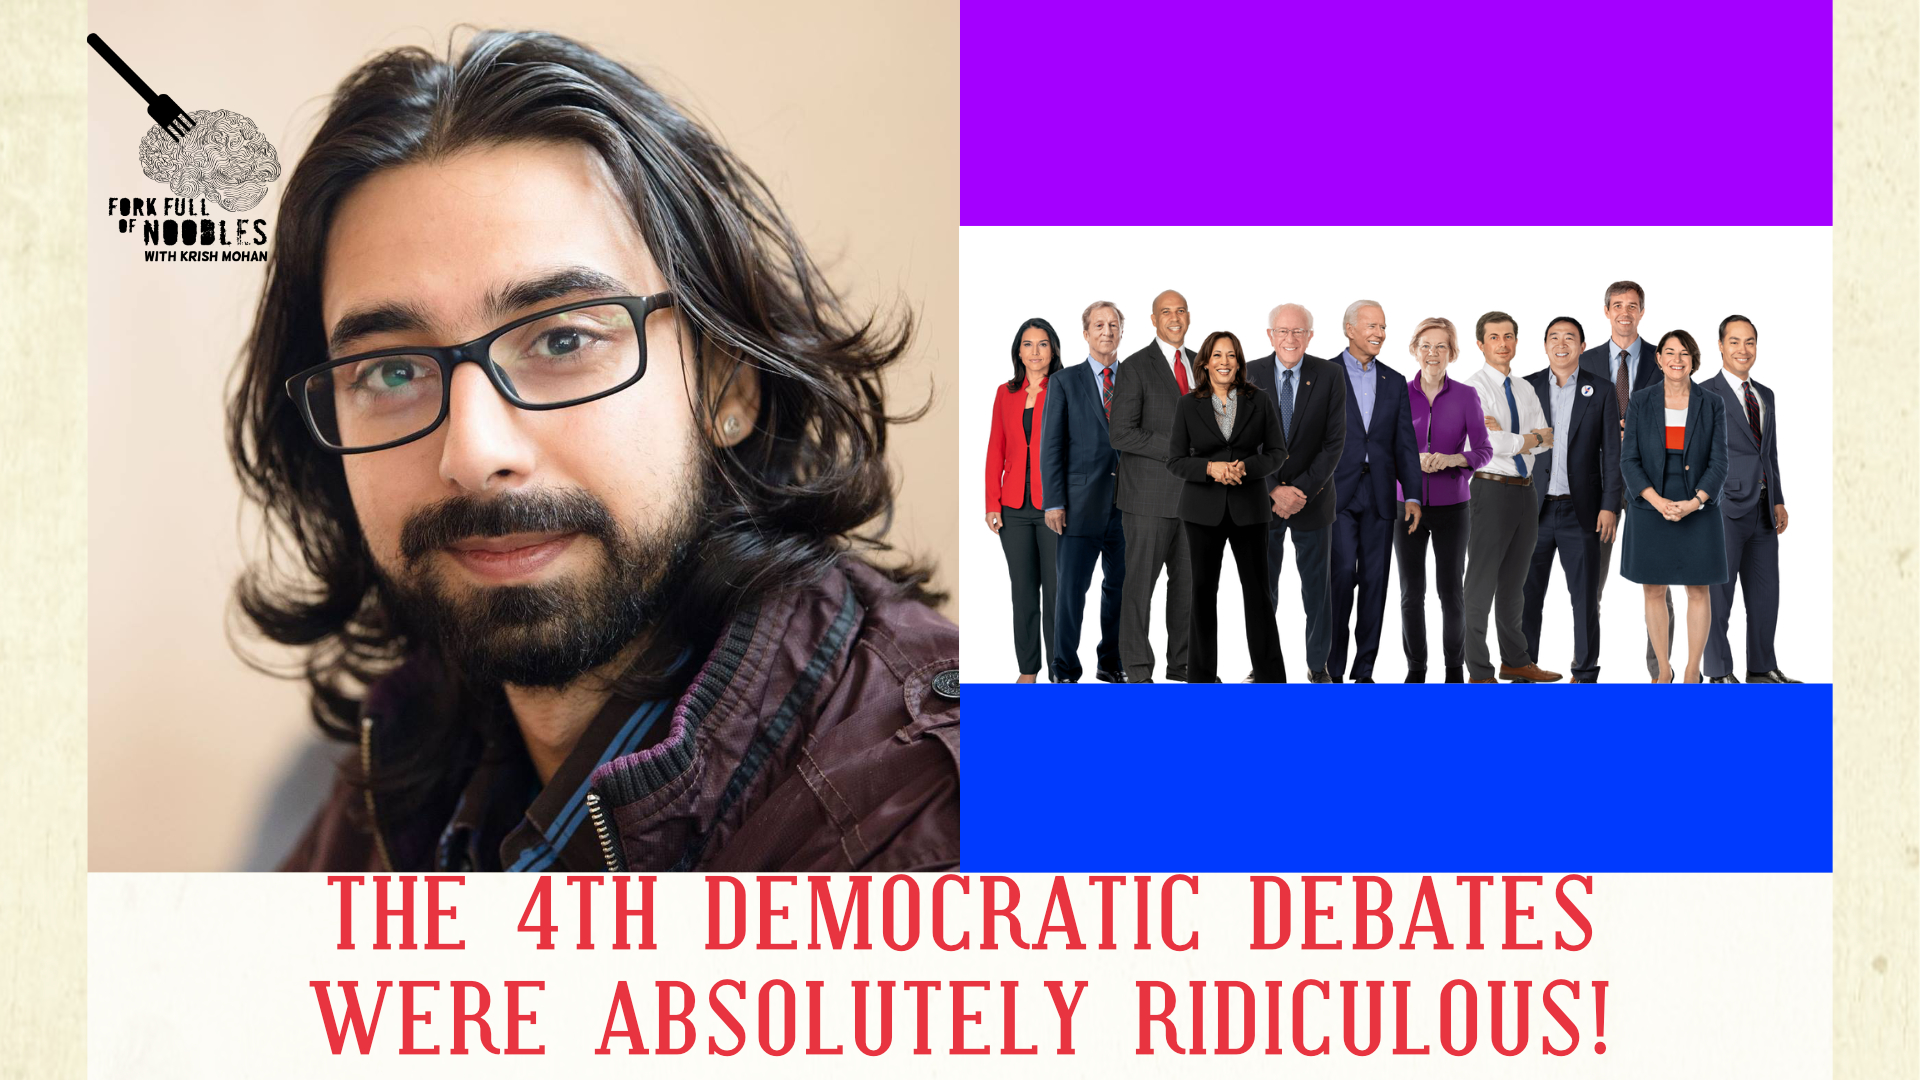 The Democratic Debates Were Ridiculous! [Live Stand Up Comedy]